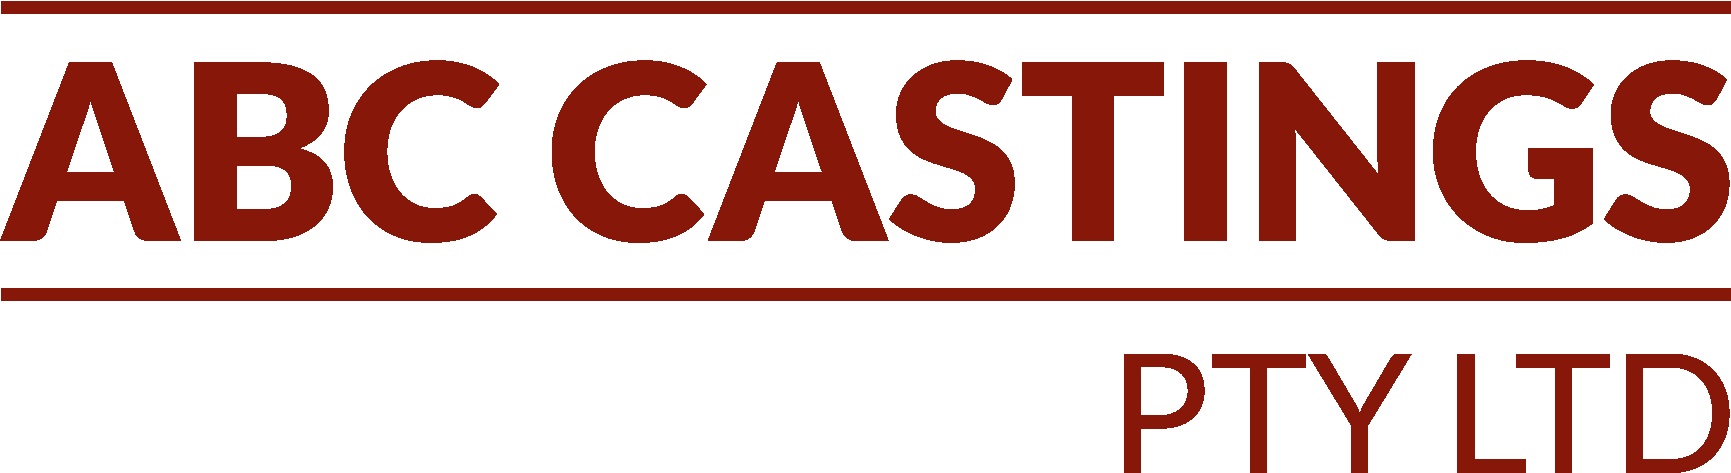 abc castings pty ltd logo